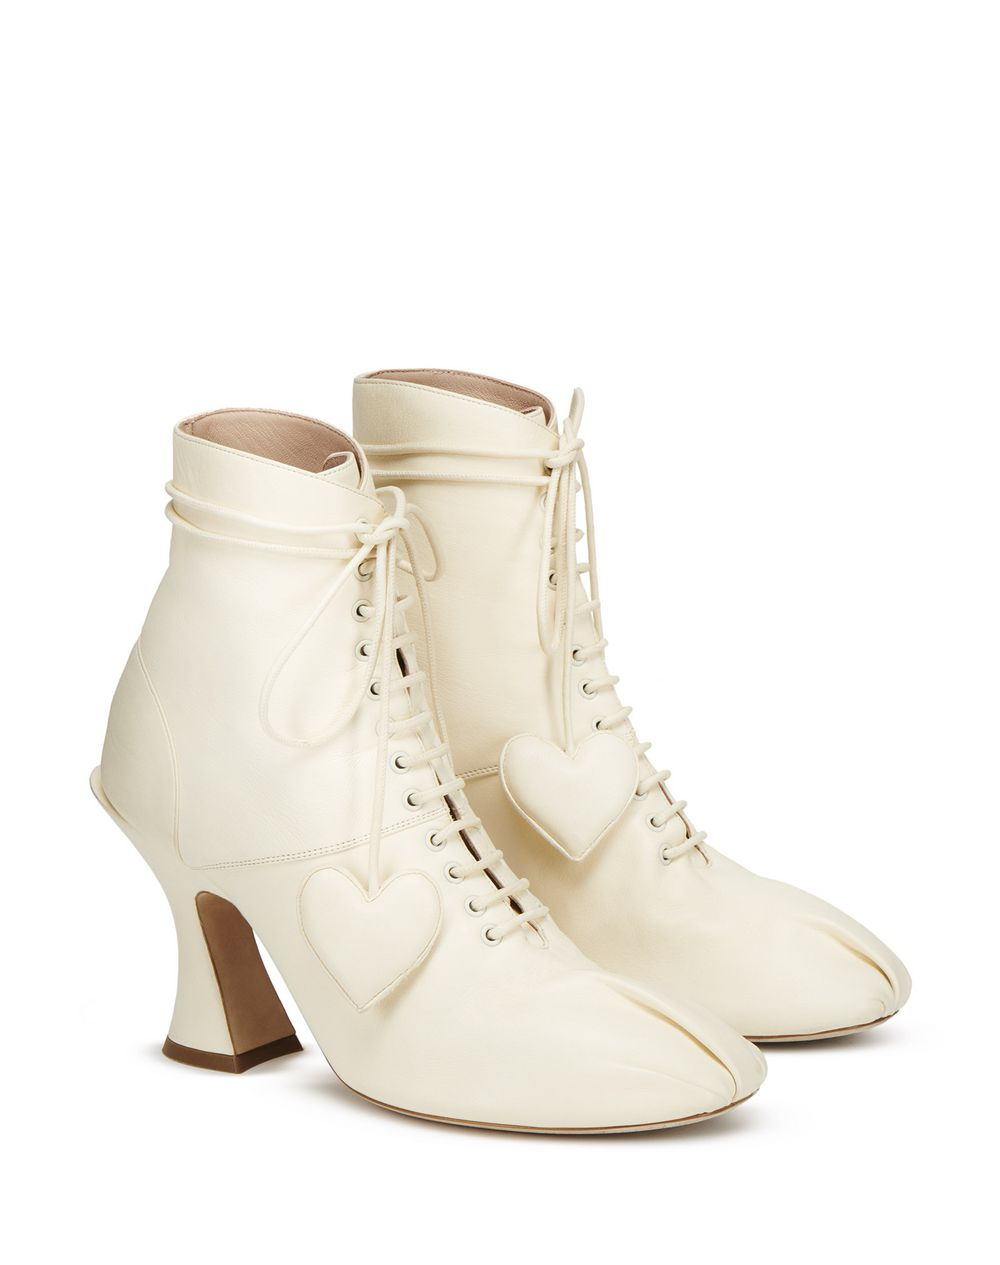 SWAN LACE-UP ANKLE BOOT - Lanvin